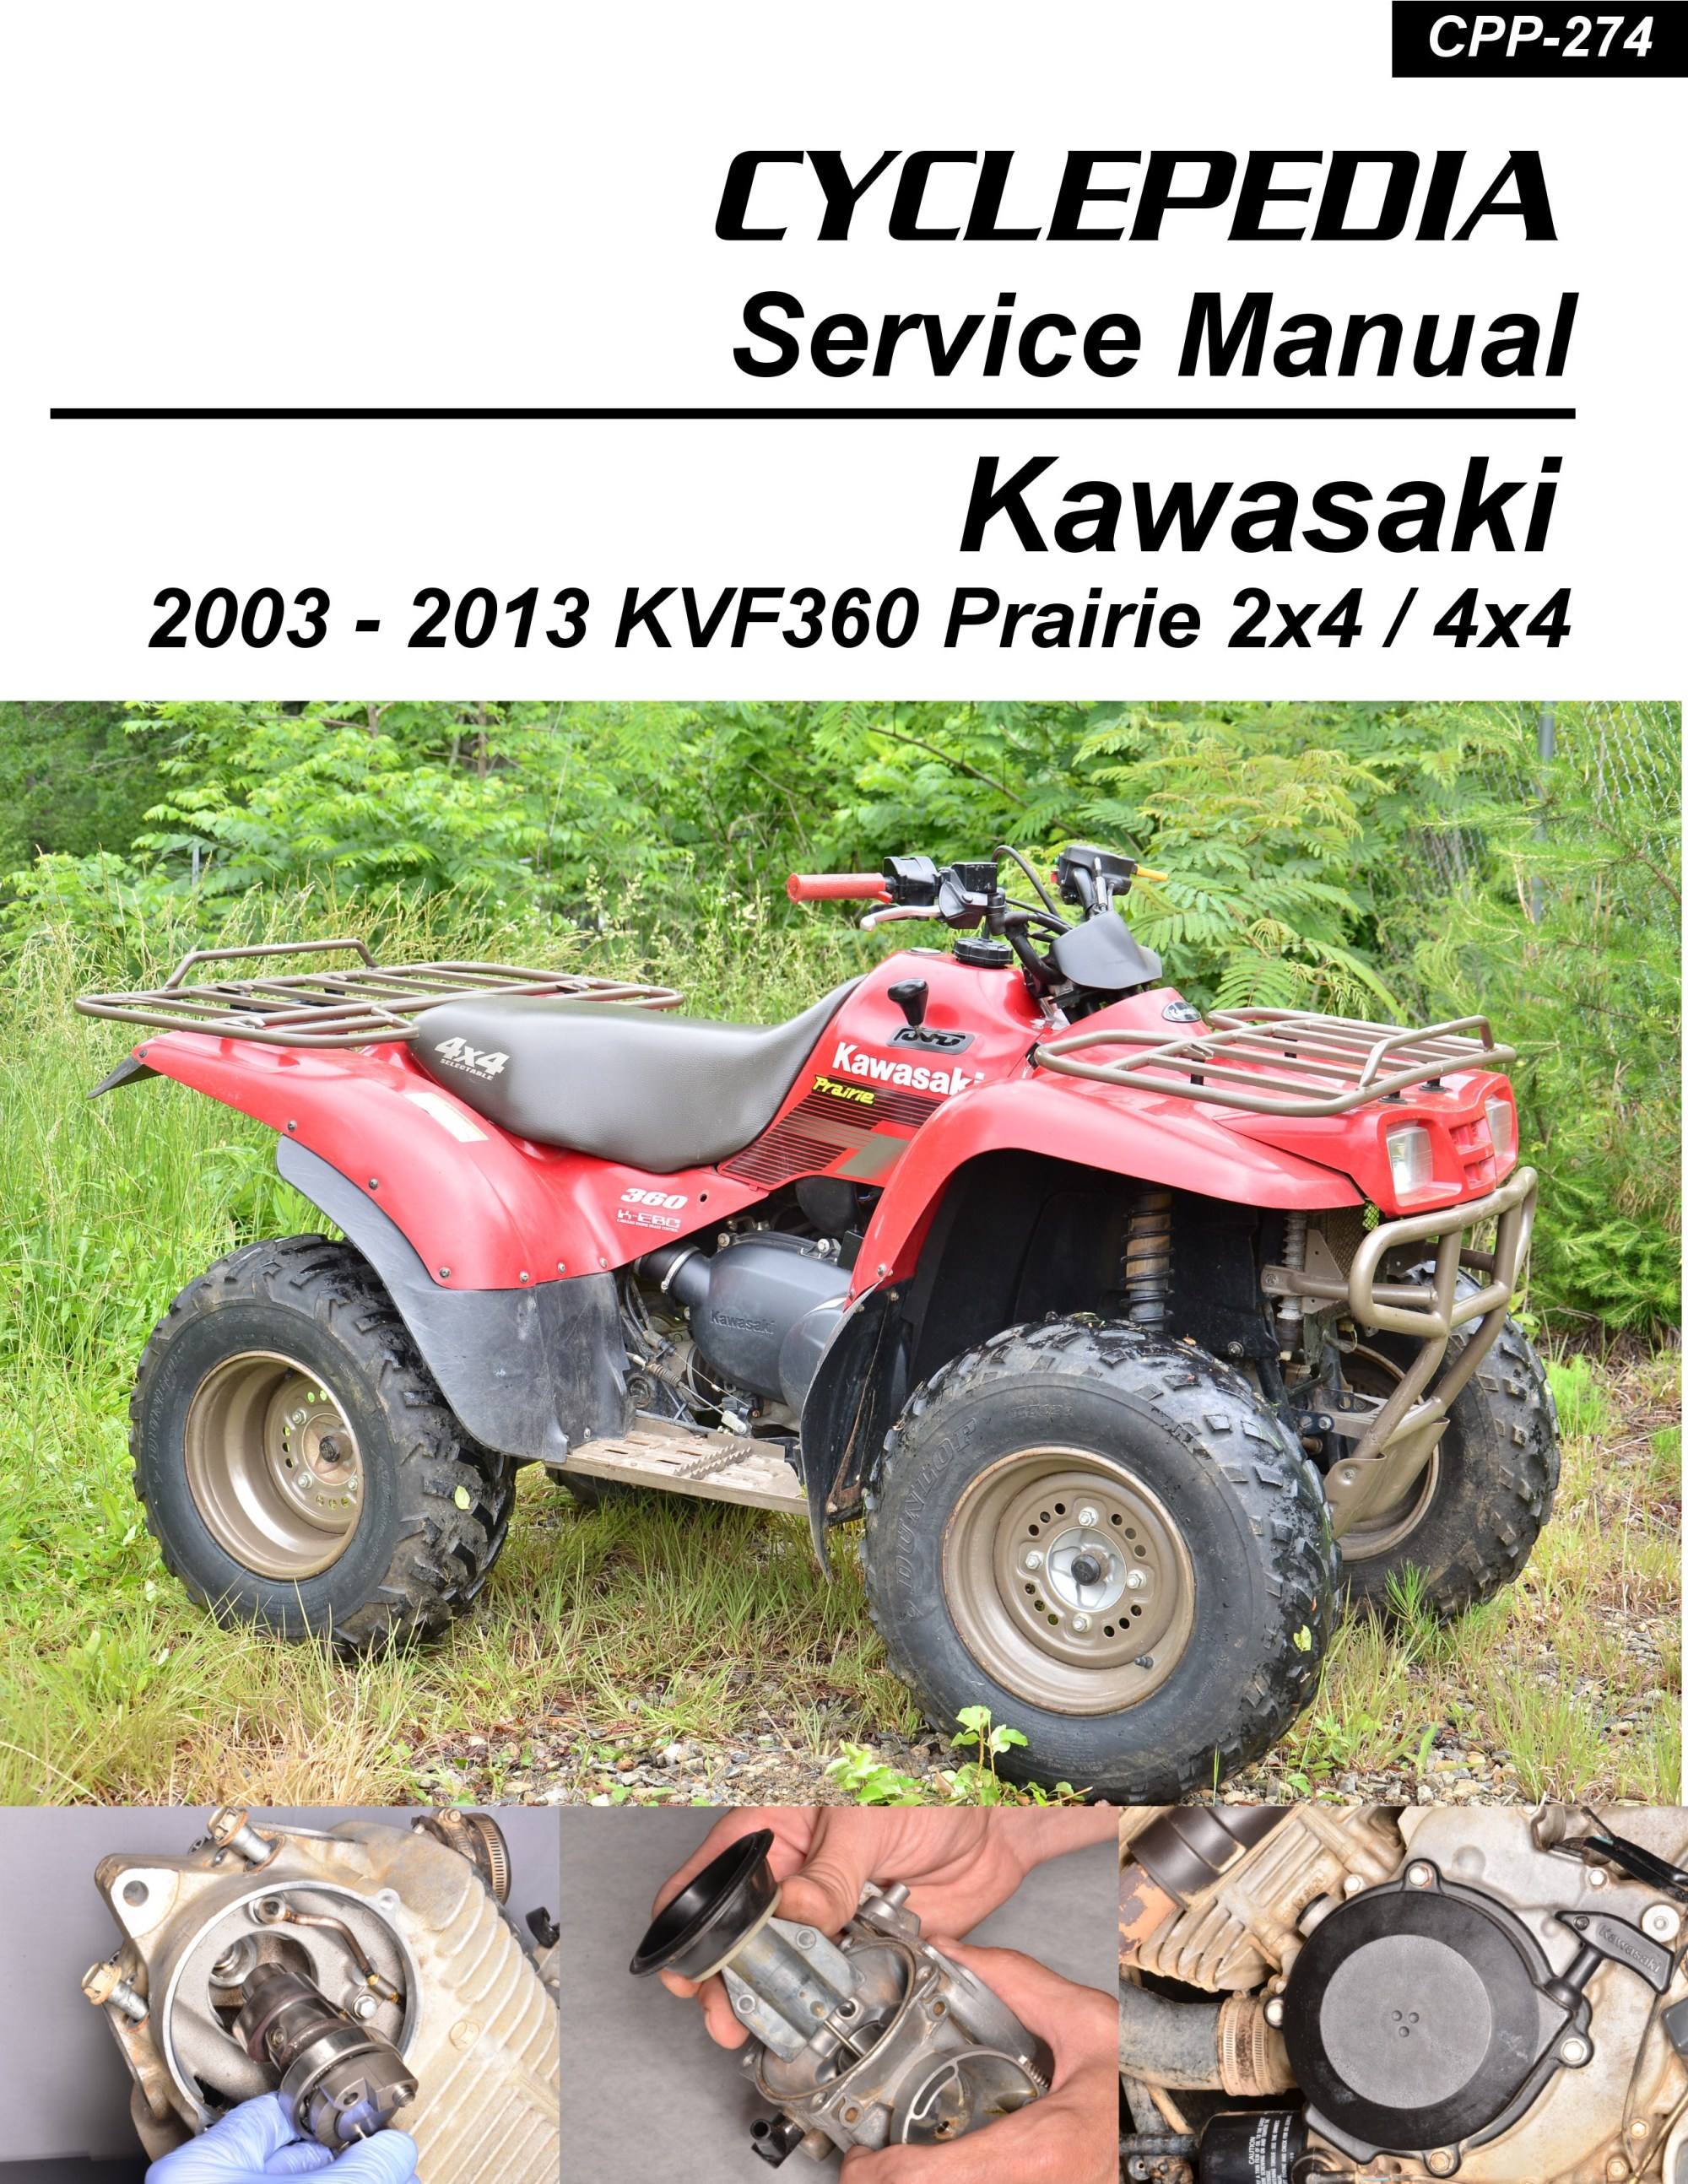 hight resolution of kawasaki kvf360 prairie printed cyclepedia atv service manual 1 jpg